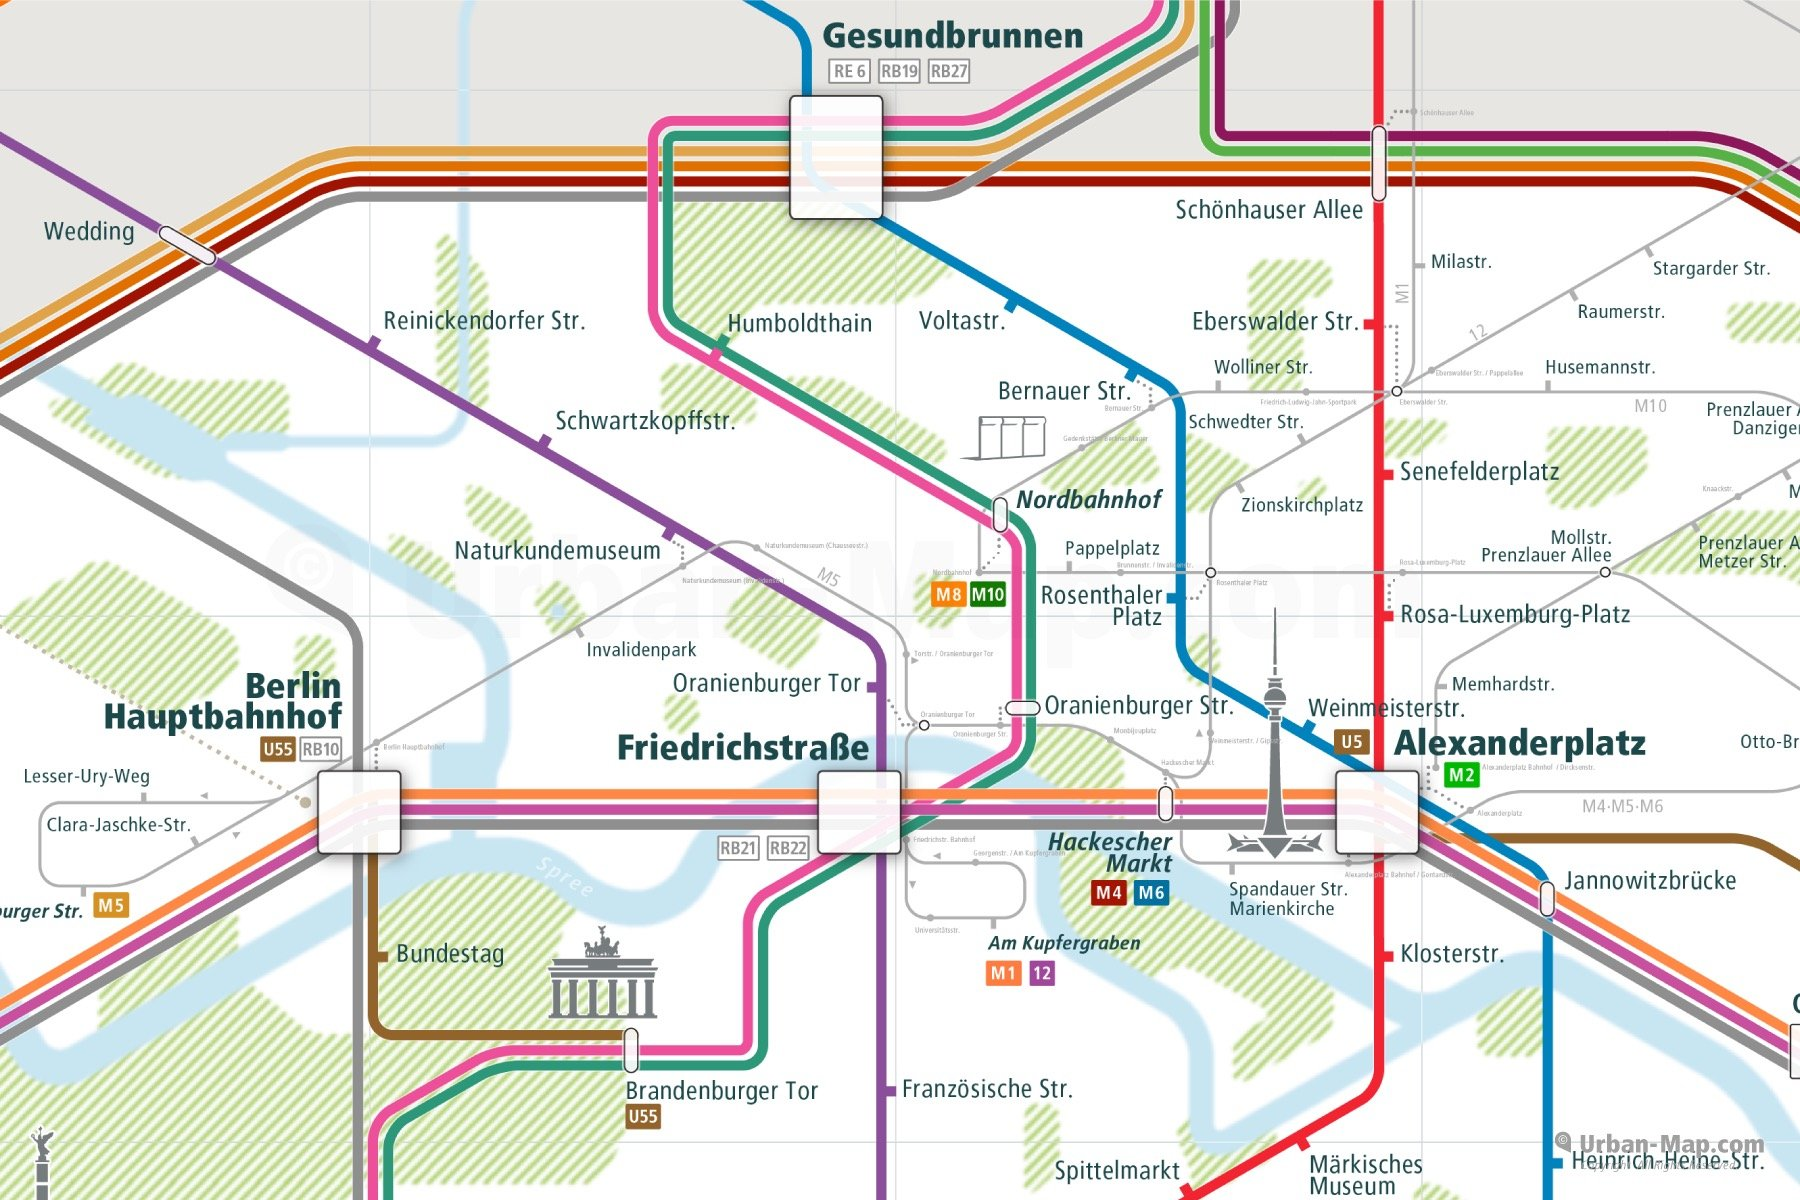 Berlin City Rail Map shows the train and public transportation routes of Metro, U-Bahn, S-Bahn, Tram, RE Deutsche Bahn and Airport Link - Close-Up